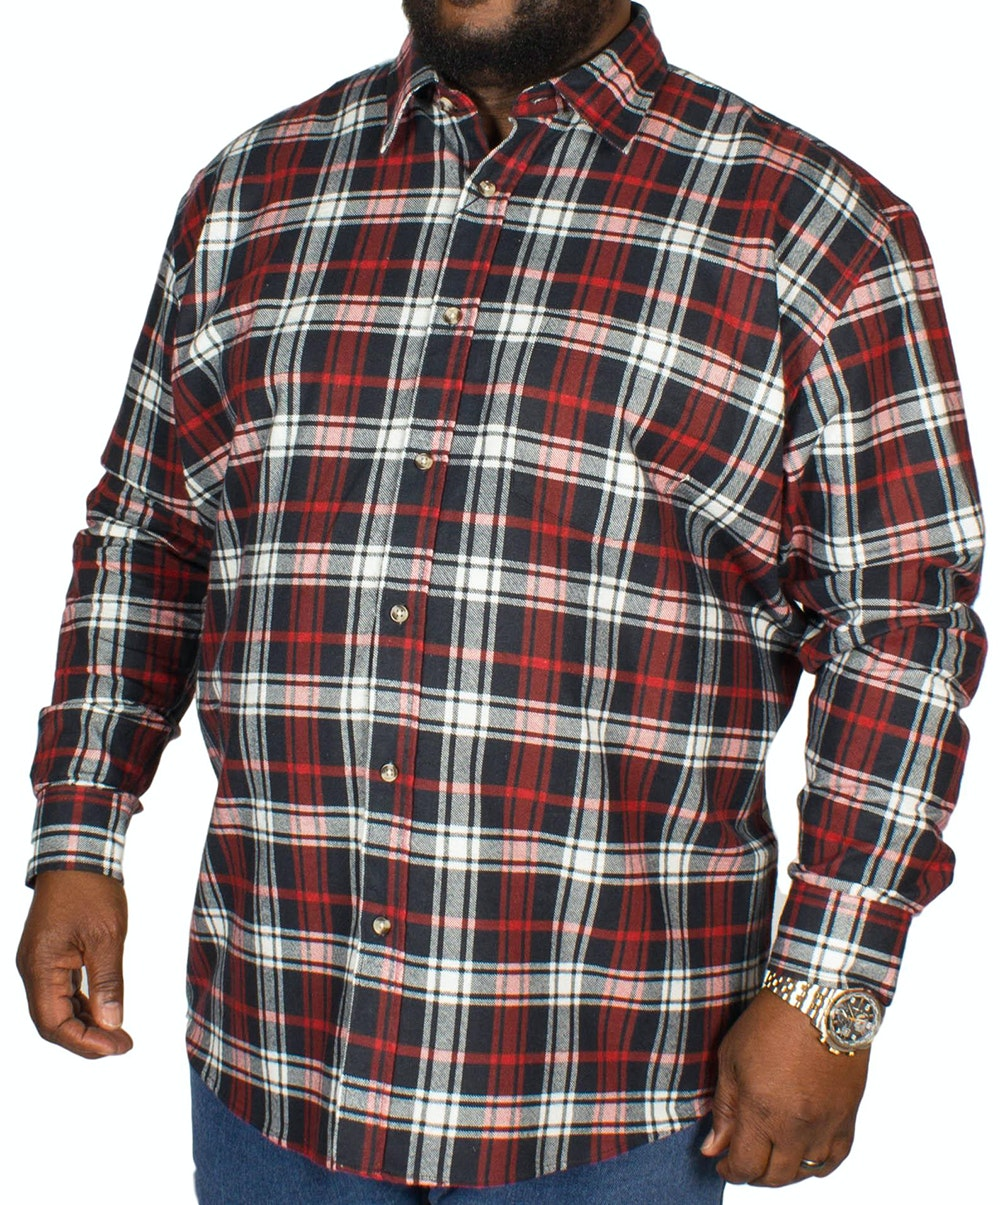 Cotton Valley Flannel Long Sleeve Shirt Red/Navy